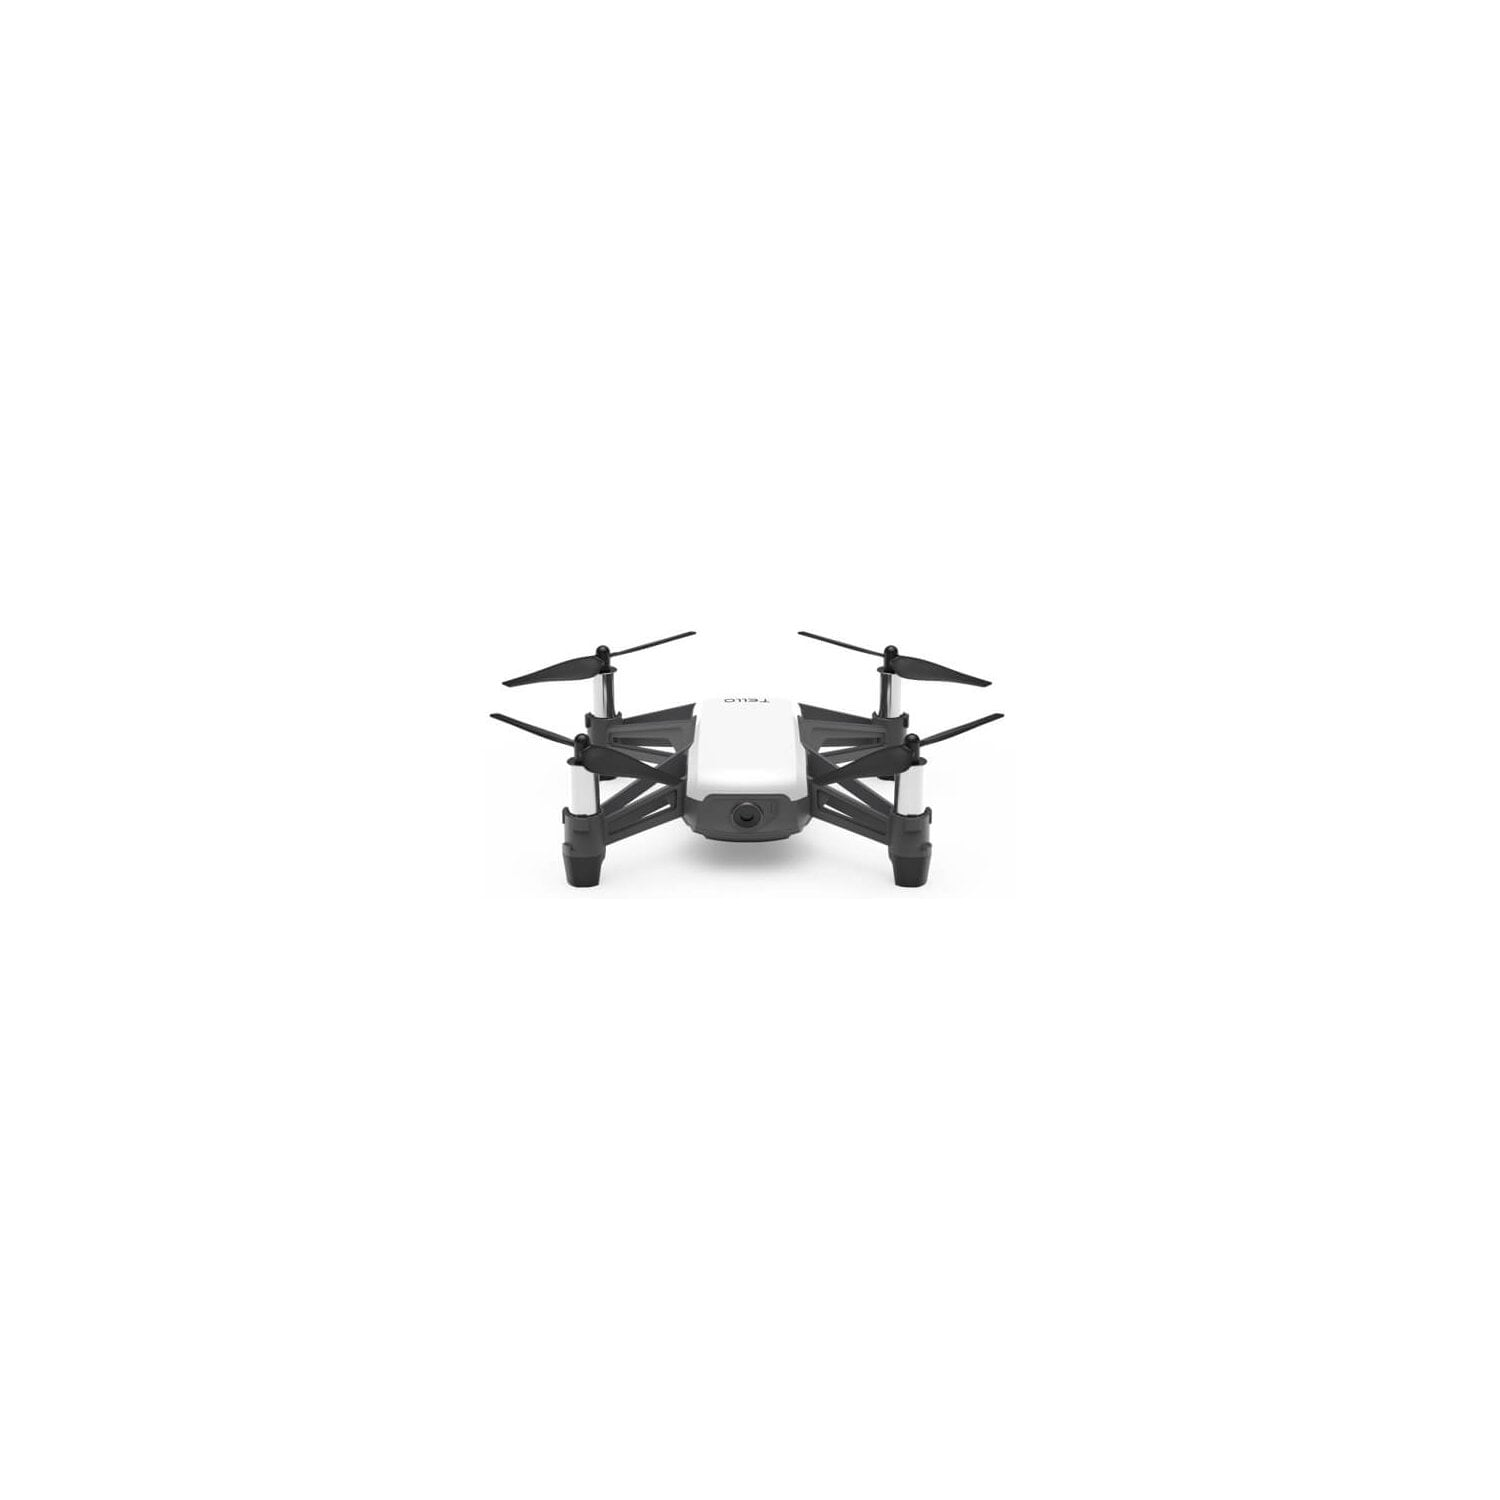 Dron DJI Ryze Tello Boost Combo powered by Intel Biały